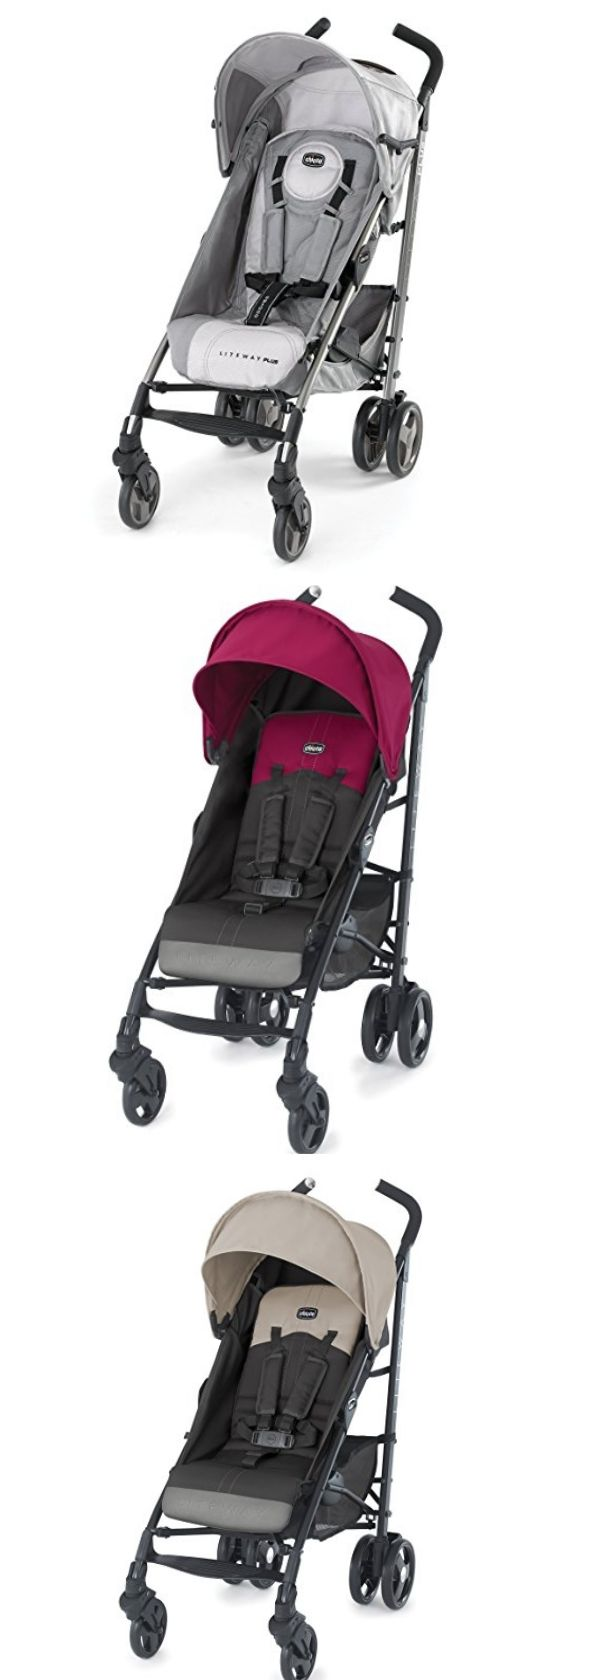 On our list of the top ten best umbrella strollers is the Chicco Liteway. Why We Love It: If you're interested in a stroller that is aesthetically pleasing, then the Chicco Liteway is worth taking a look at. It is both stylish and bold, comes in trendy colors, has modern tailoring, eliptical tubing, and high-tech wheels. It features a one hand adjustable fully reclining seat with five positions, an adjustable leg rest with two positions, and a hide-away... Continue Reading